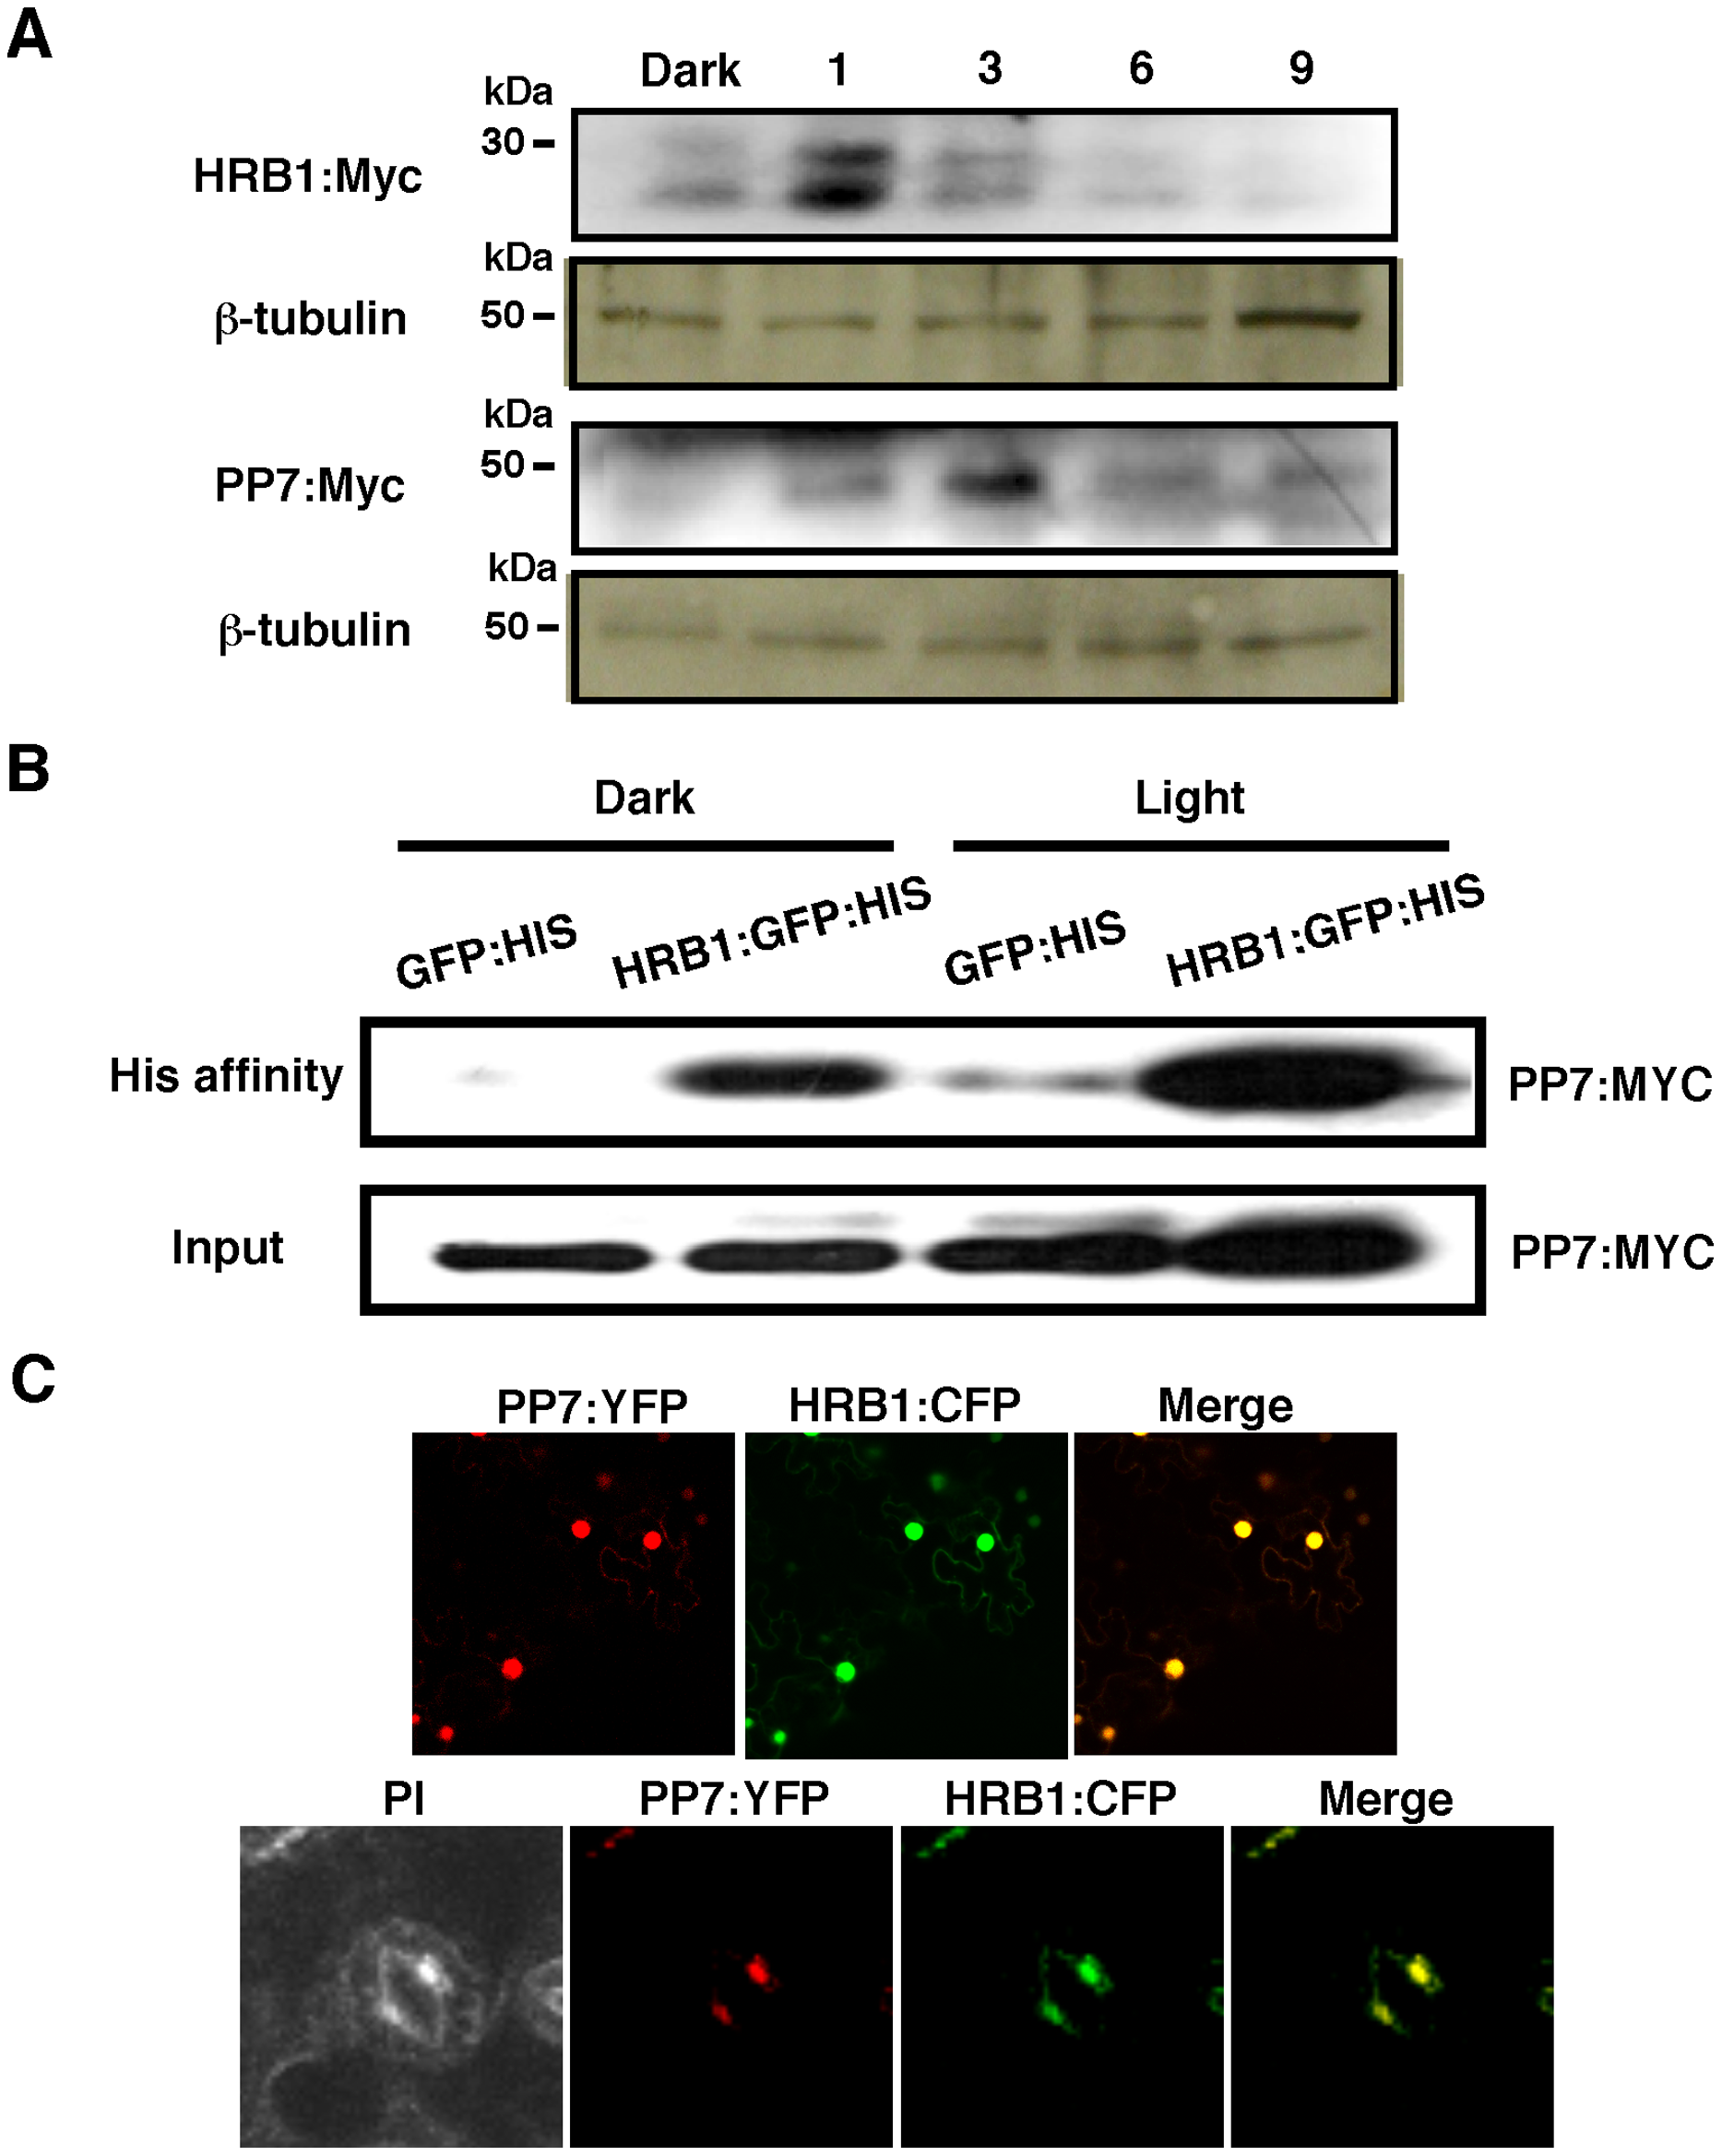 HRB1 interacts with PP7 <i>in vivo</i>.